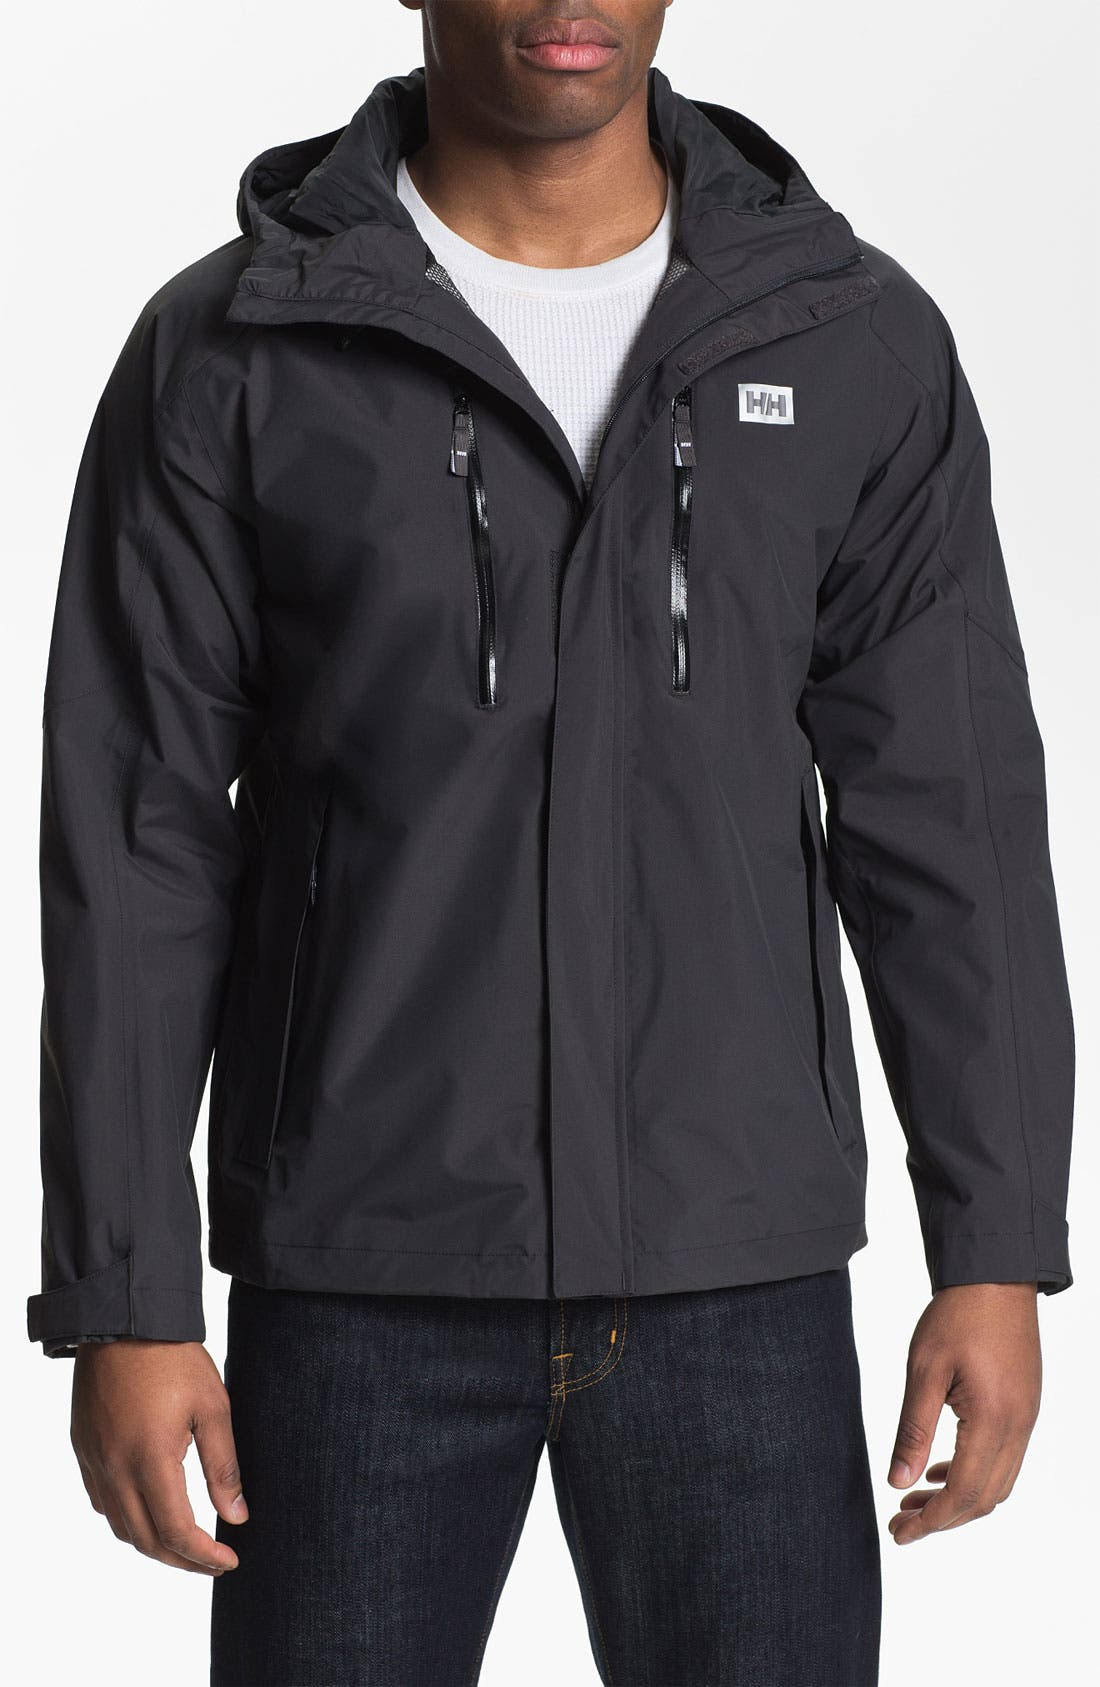 Alternate Image 1 Selected - Helly Hansen 'Seattle' Packable Jacket